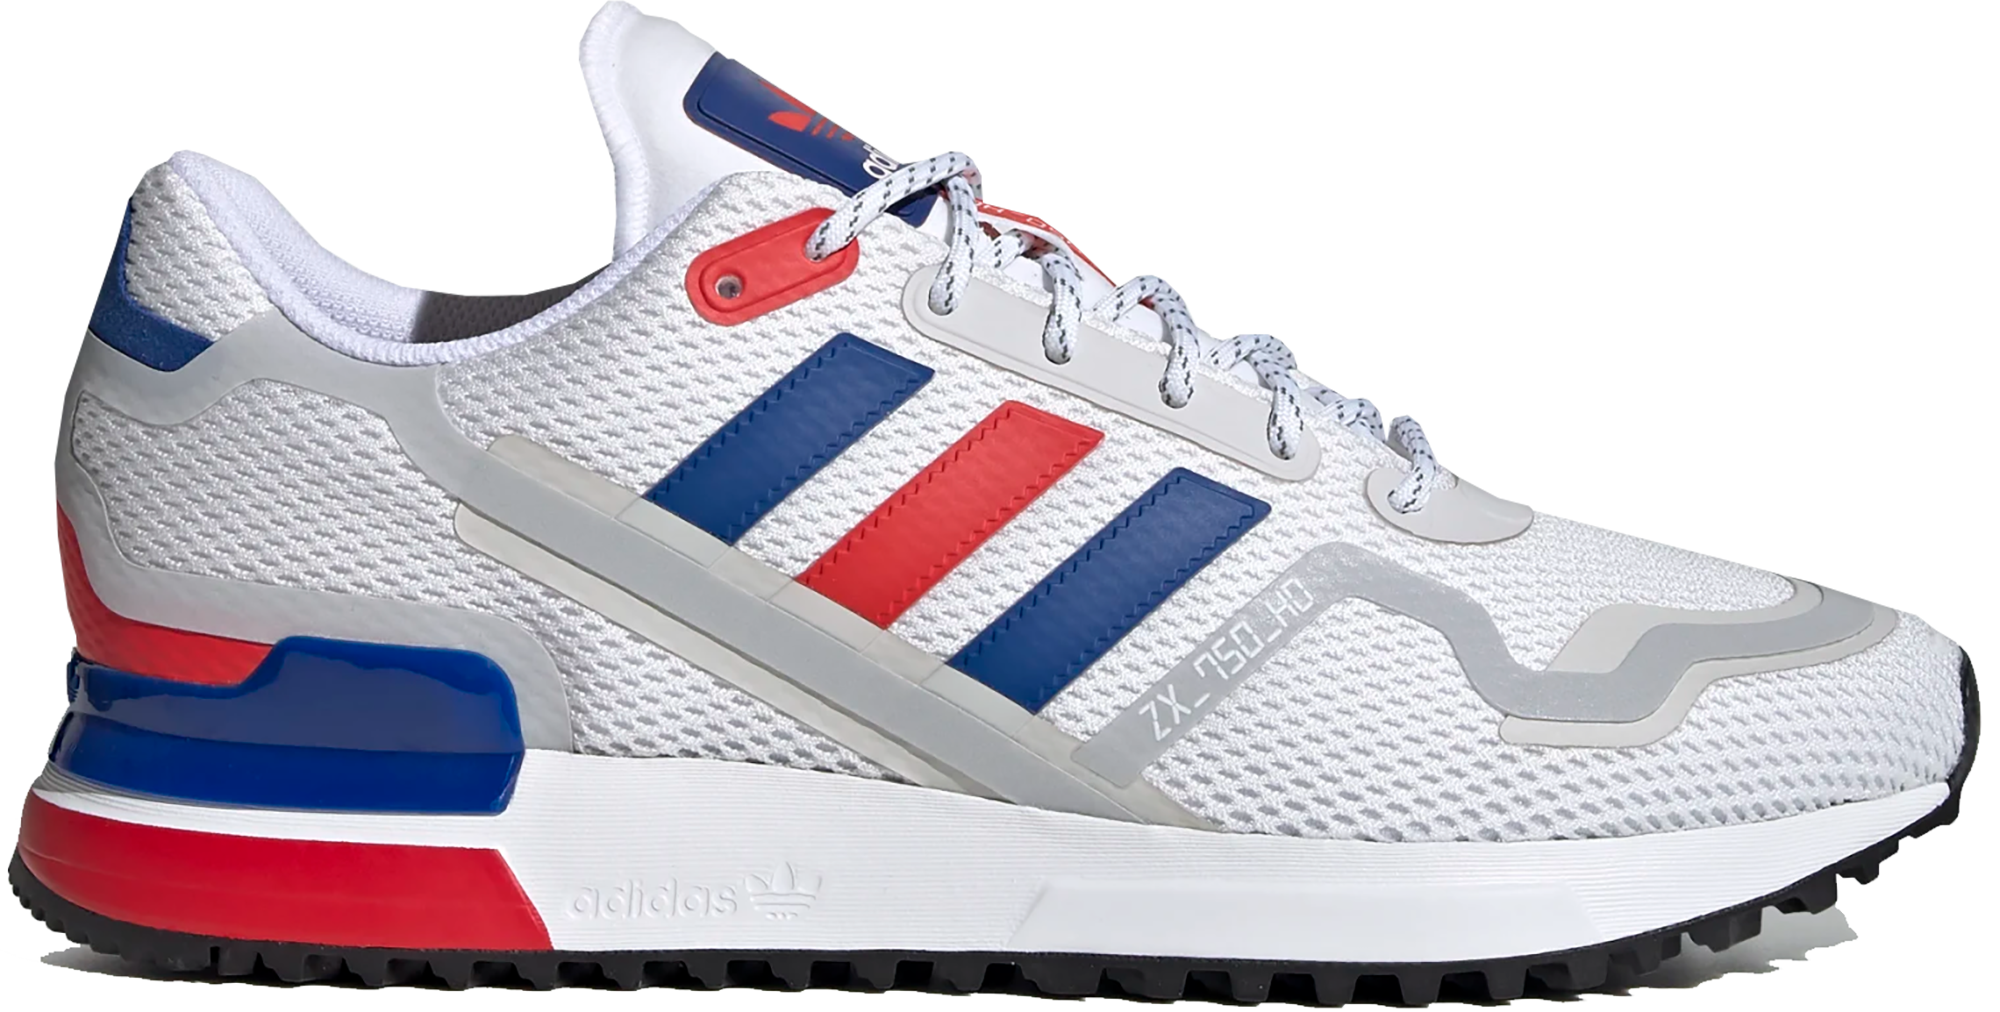 adidas ZX 750 HD Collegiate Royal Red